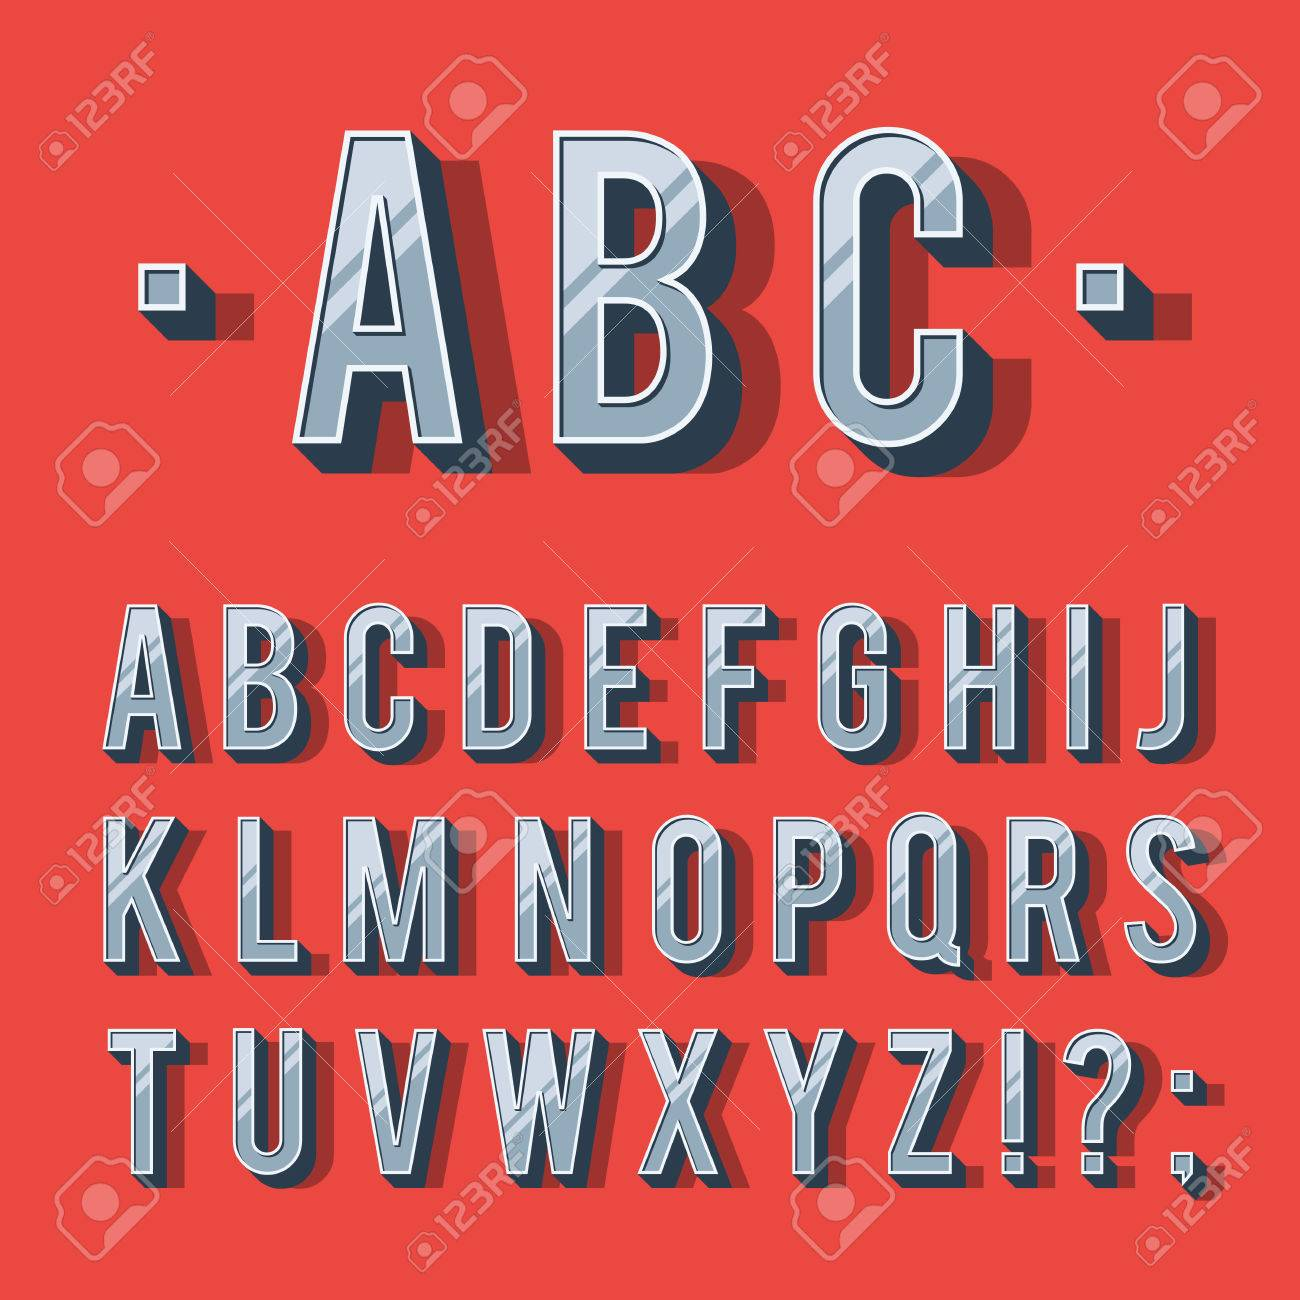 Retro Type Font Vintage Typography Letters Alphabet With Shadow Vector Illustration Template Isolated